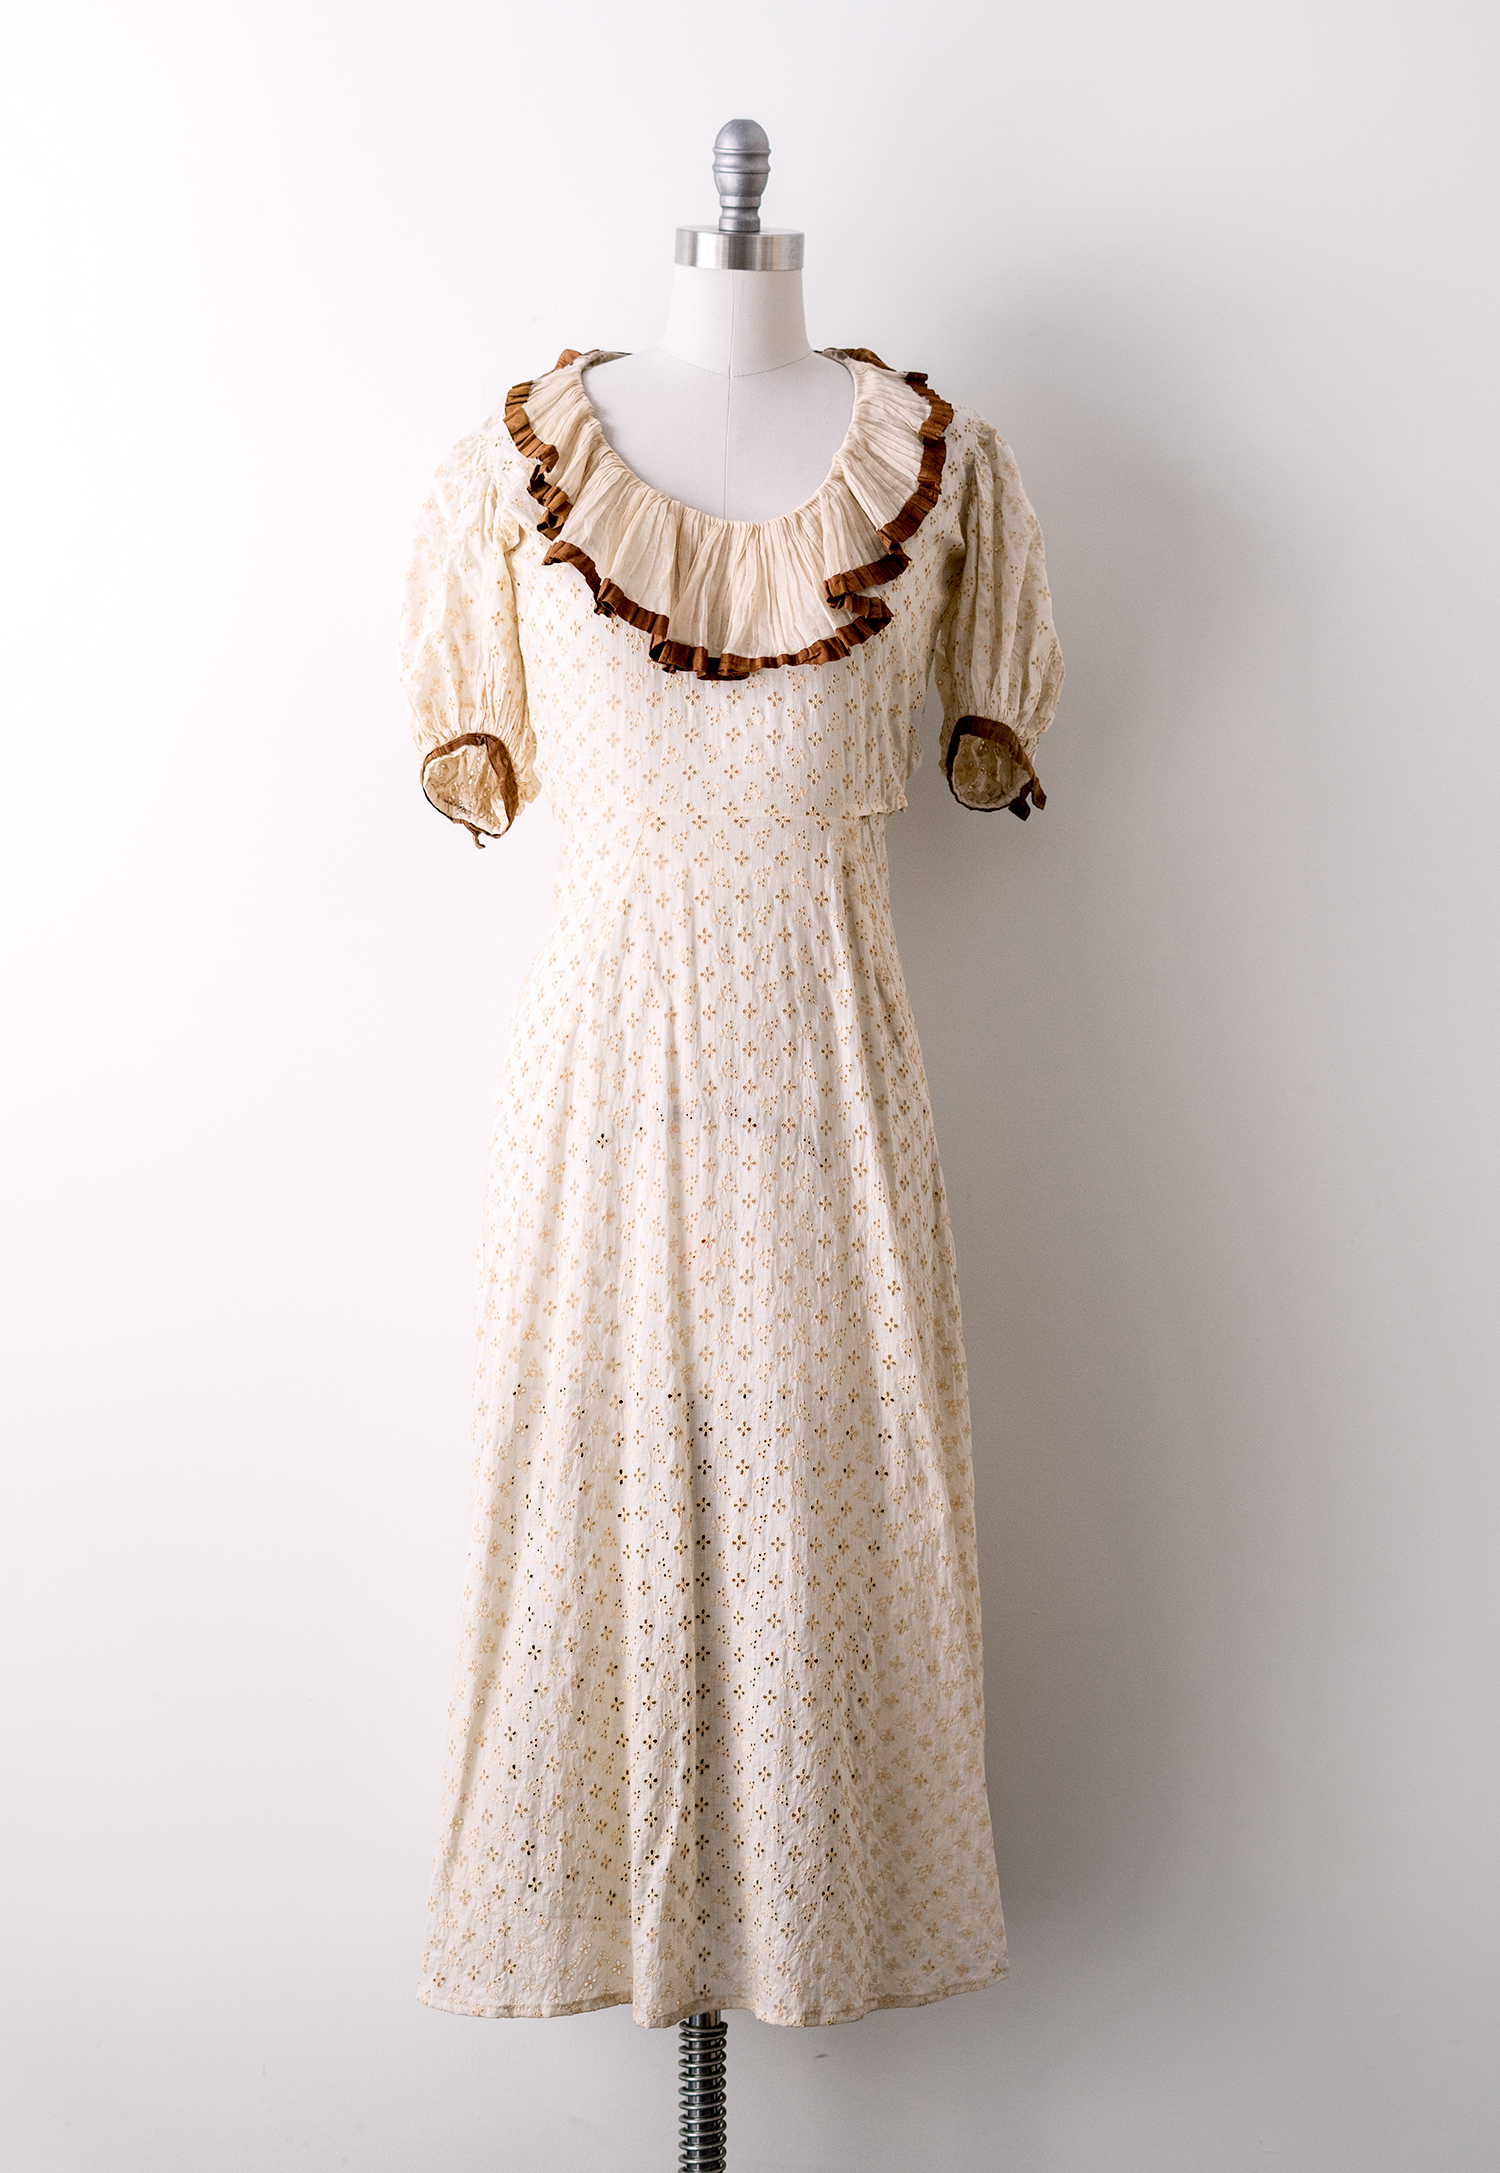 Vintage 1930's Cream Eyelet Cotton Dress